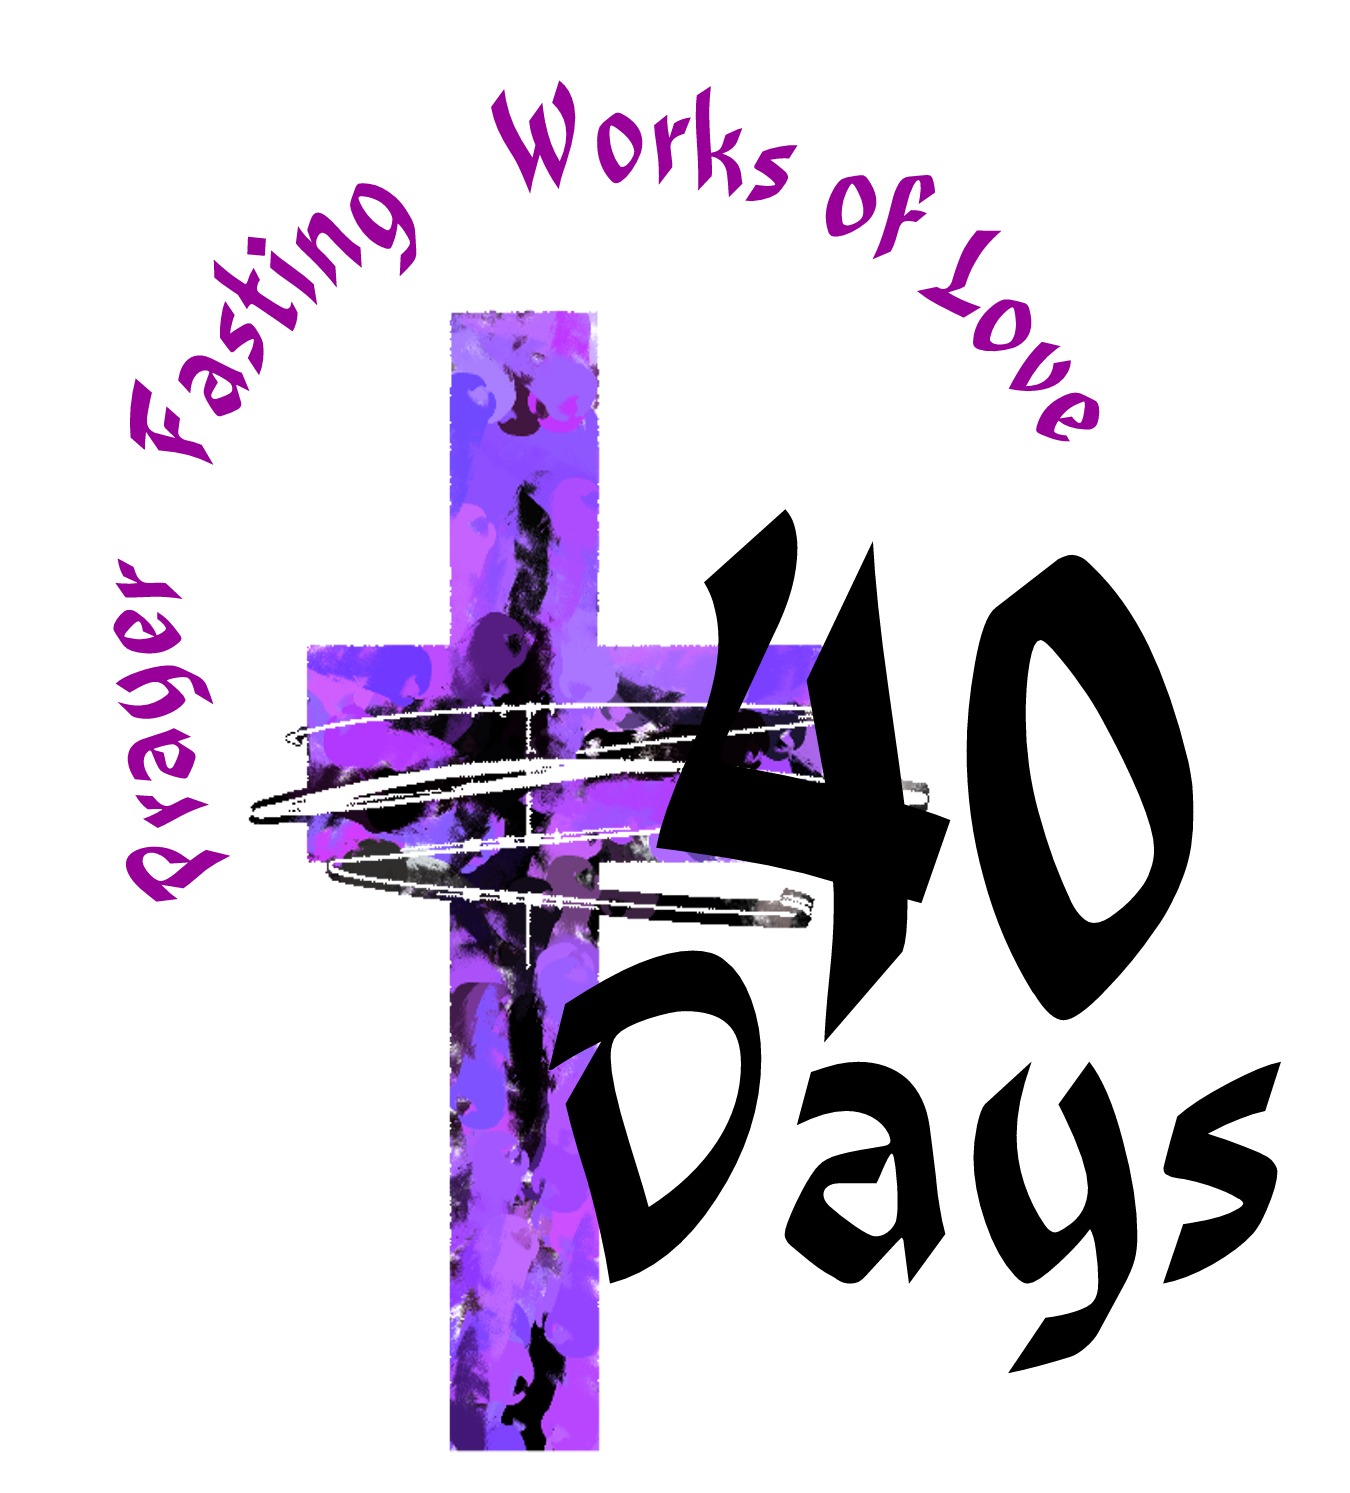 Ahs wednesday clipart png free library lent-2015-ash-wednesday-clipart-1 - St Patrick\'s Parish School Albury png free library